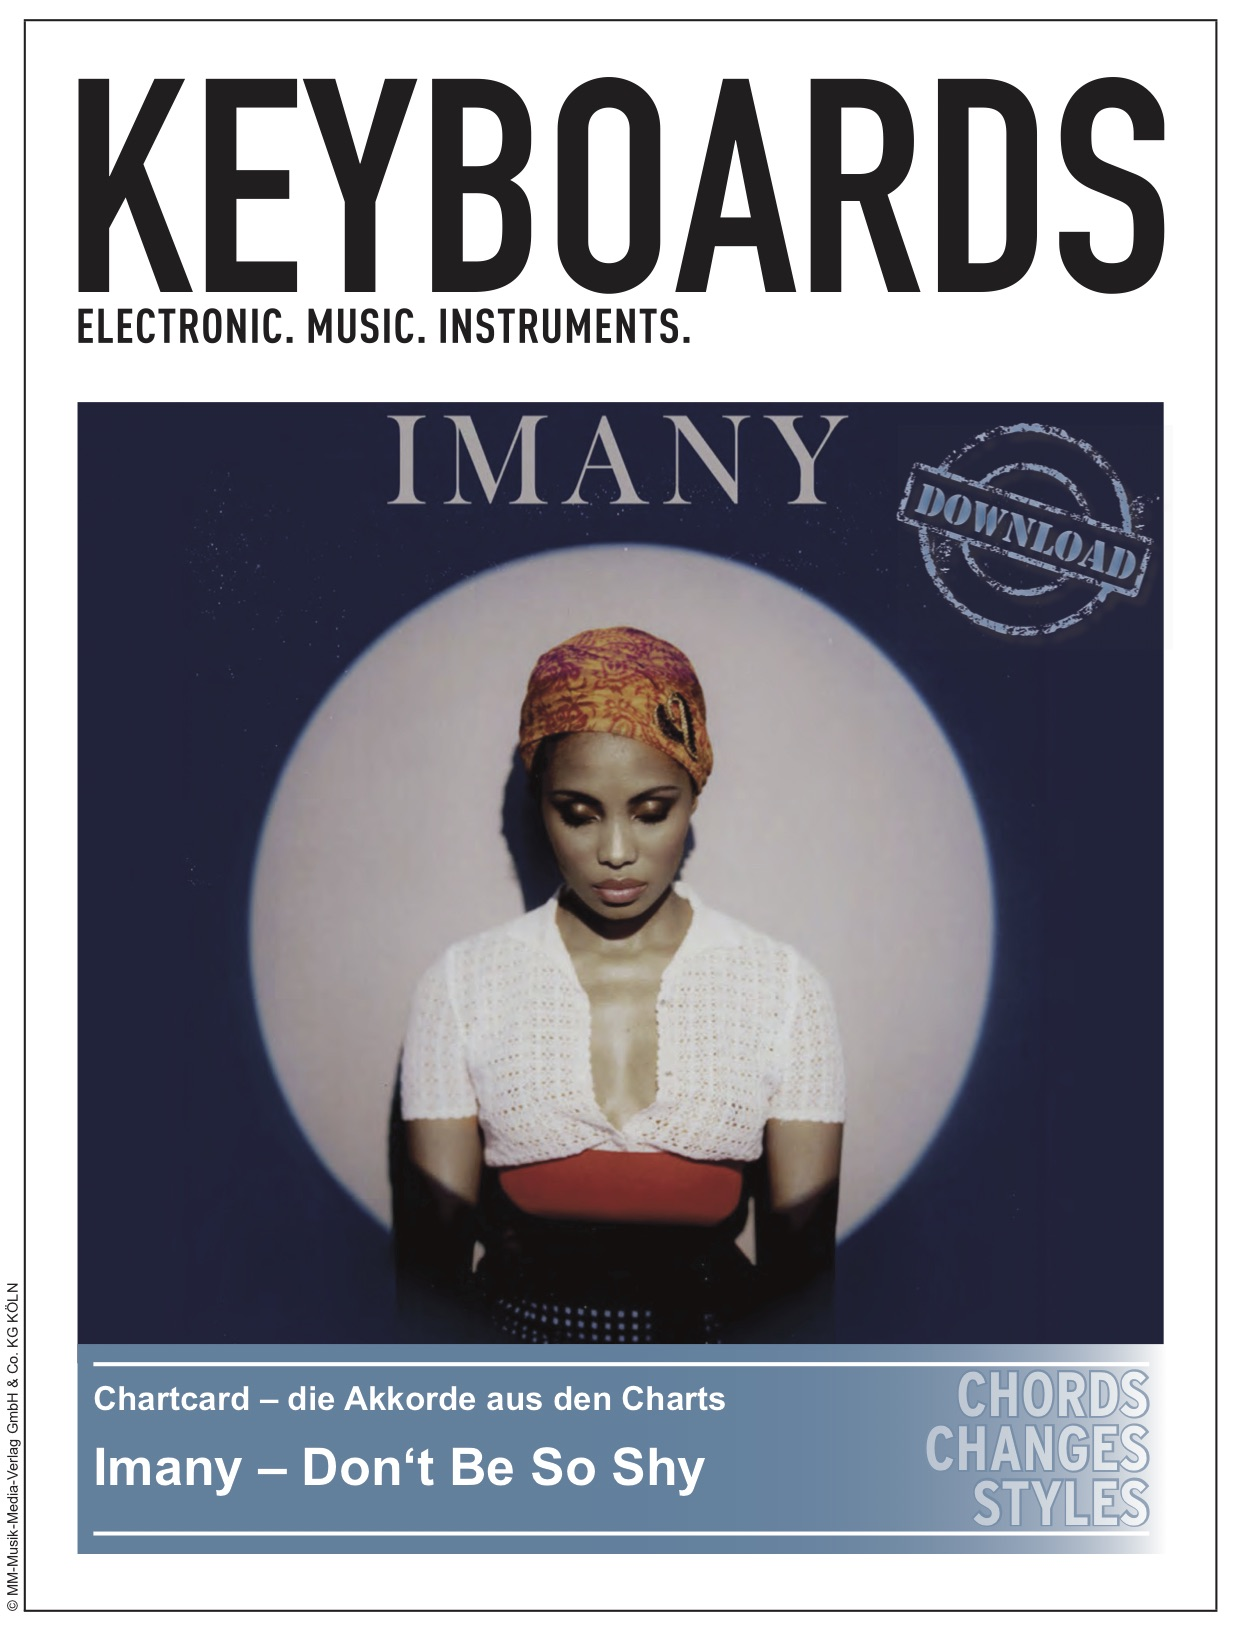 Produkt: Chartcard – Imany – Don't Be So Shy